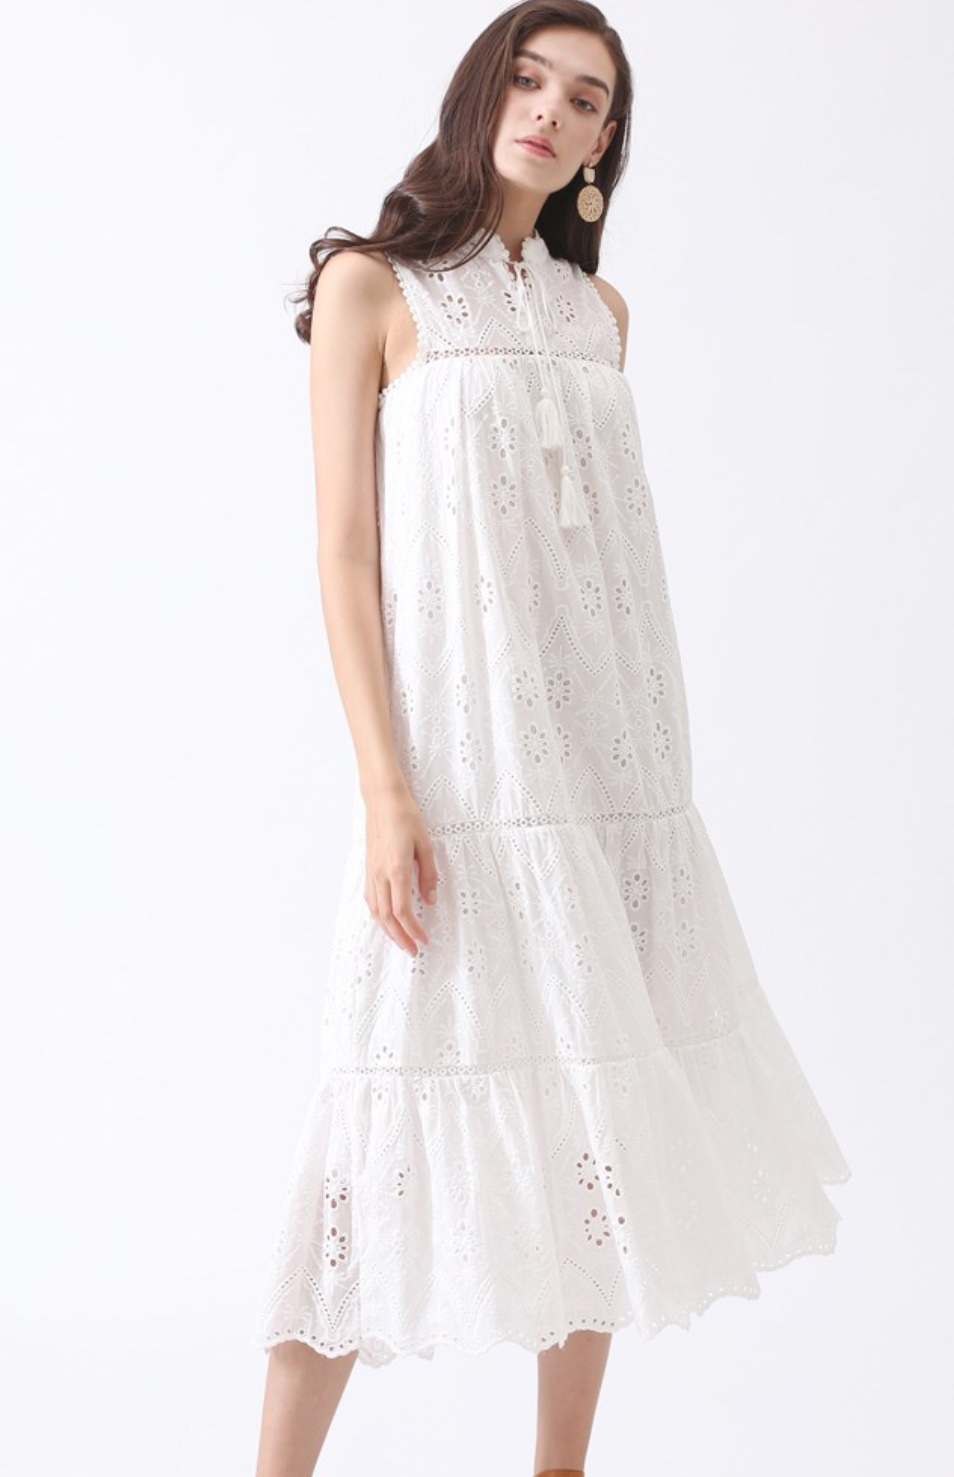 I just love the eyelet detailing on this dress. So feminine and casual!